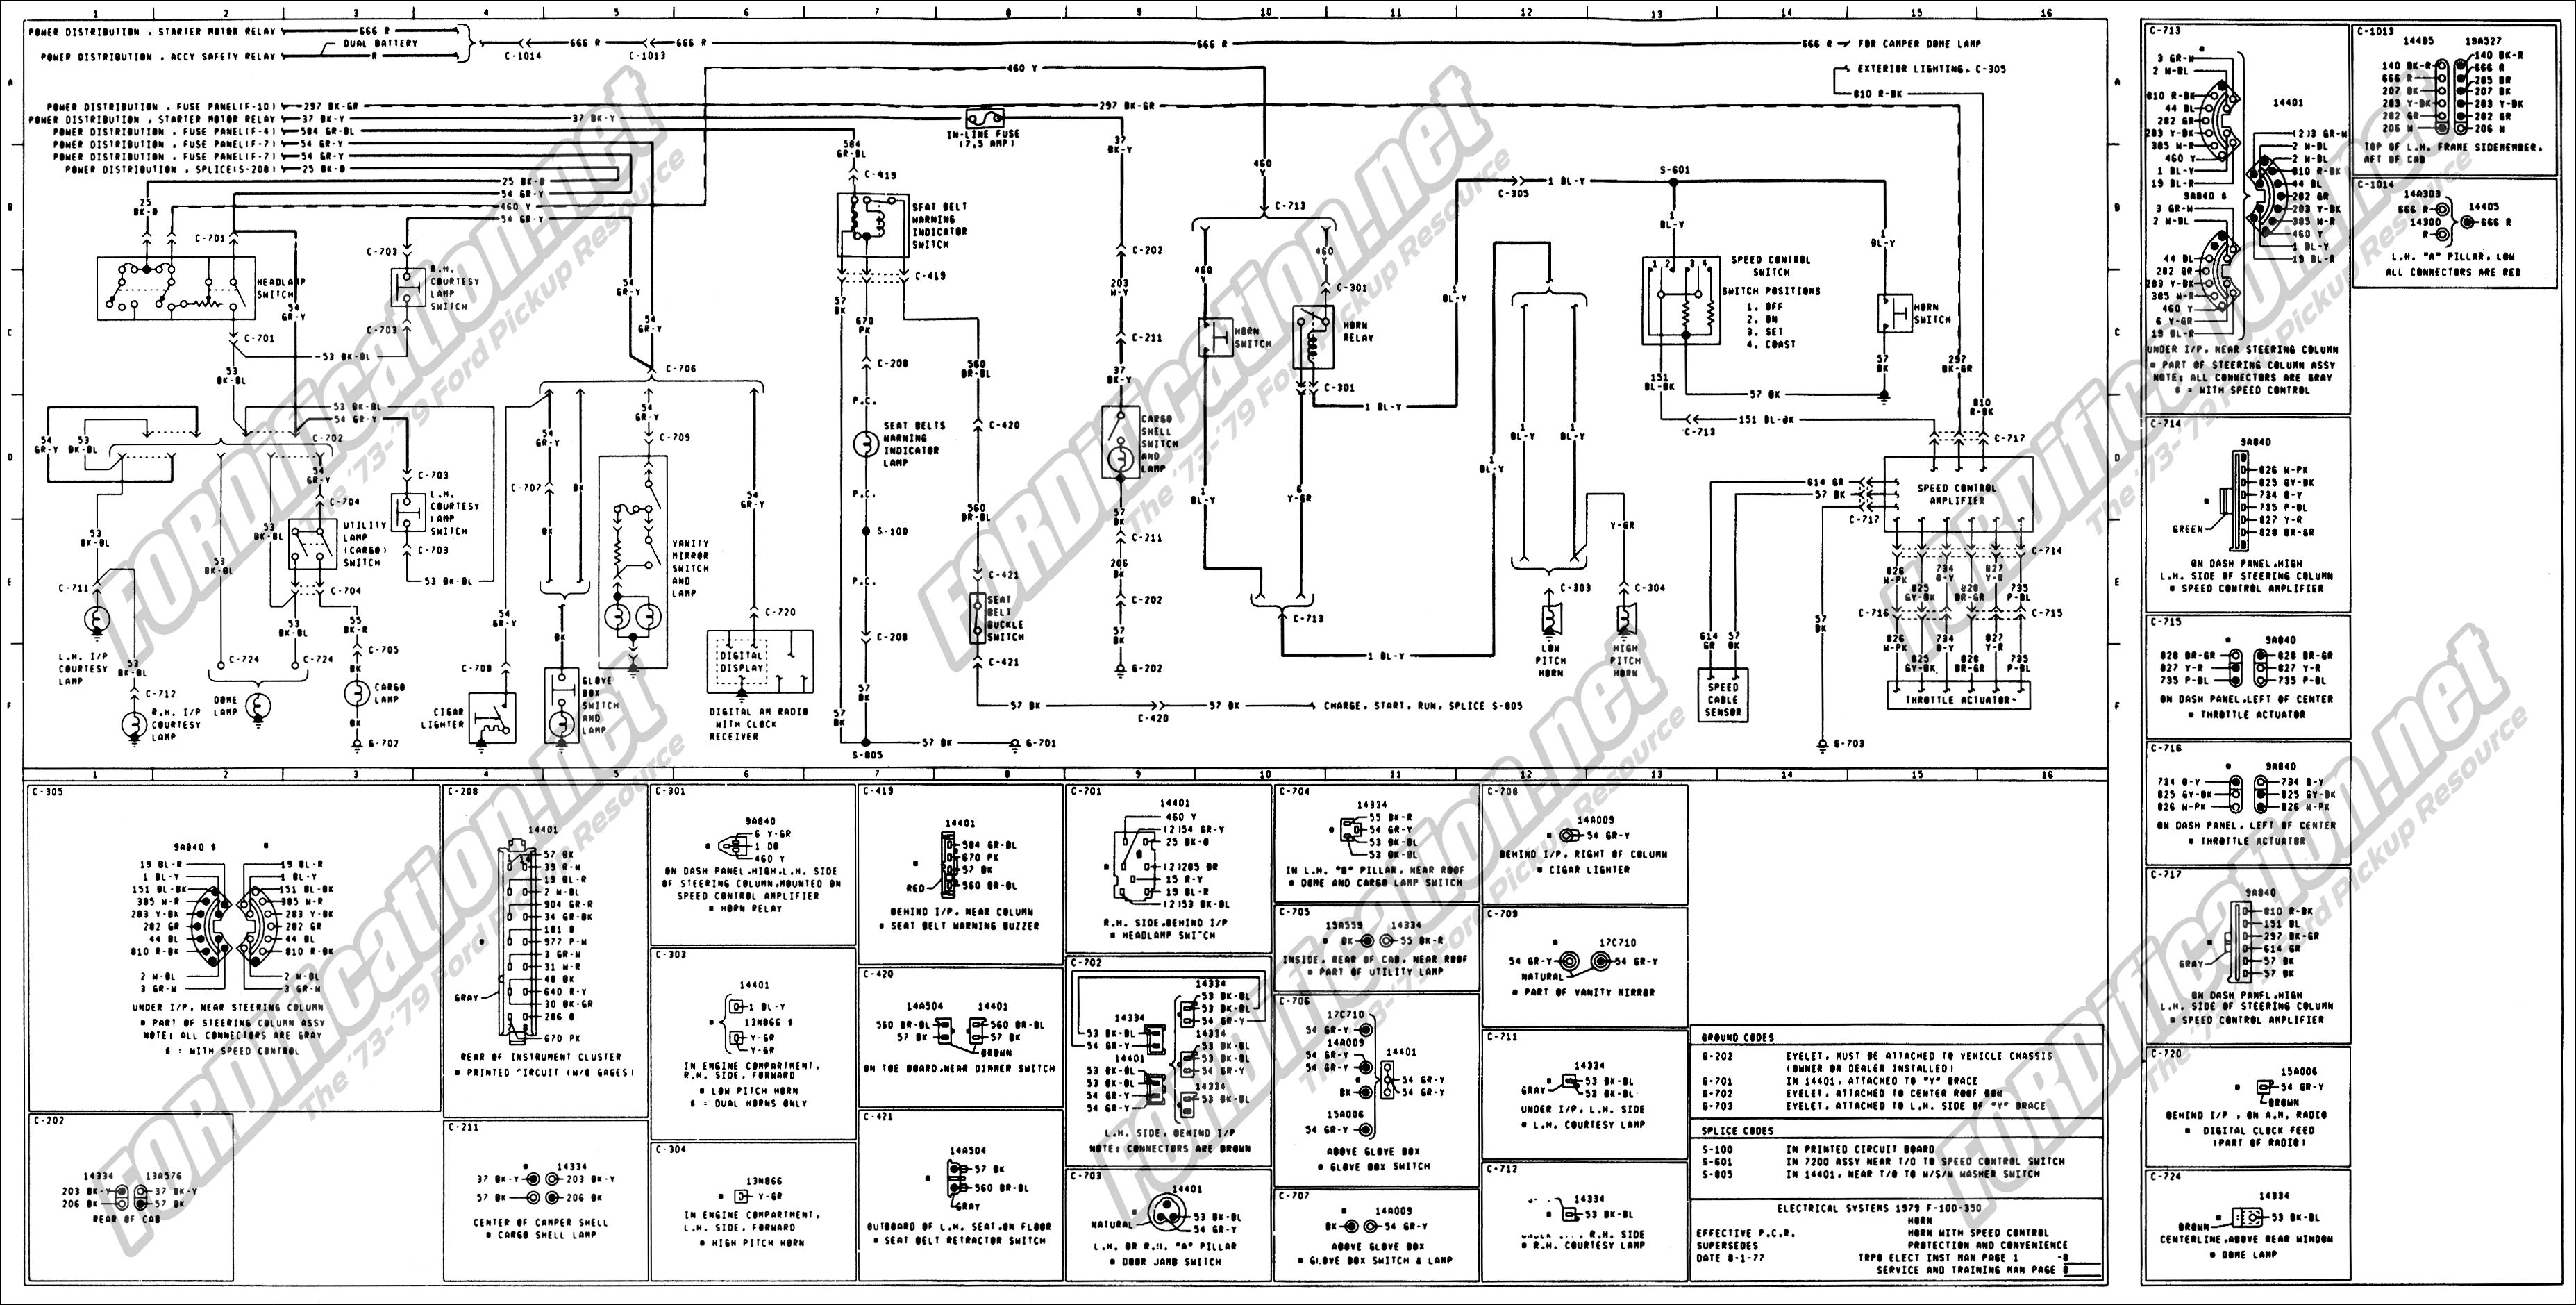 wiring_79master_8of9 1973 1979 ford truck wiring diagrams & schematics fordification net 1976 ford f100 wiring diagram at bayanpartner.co